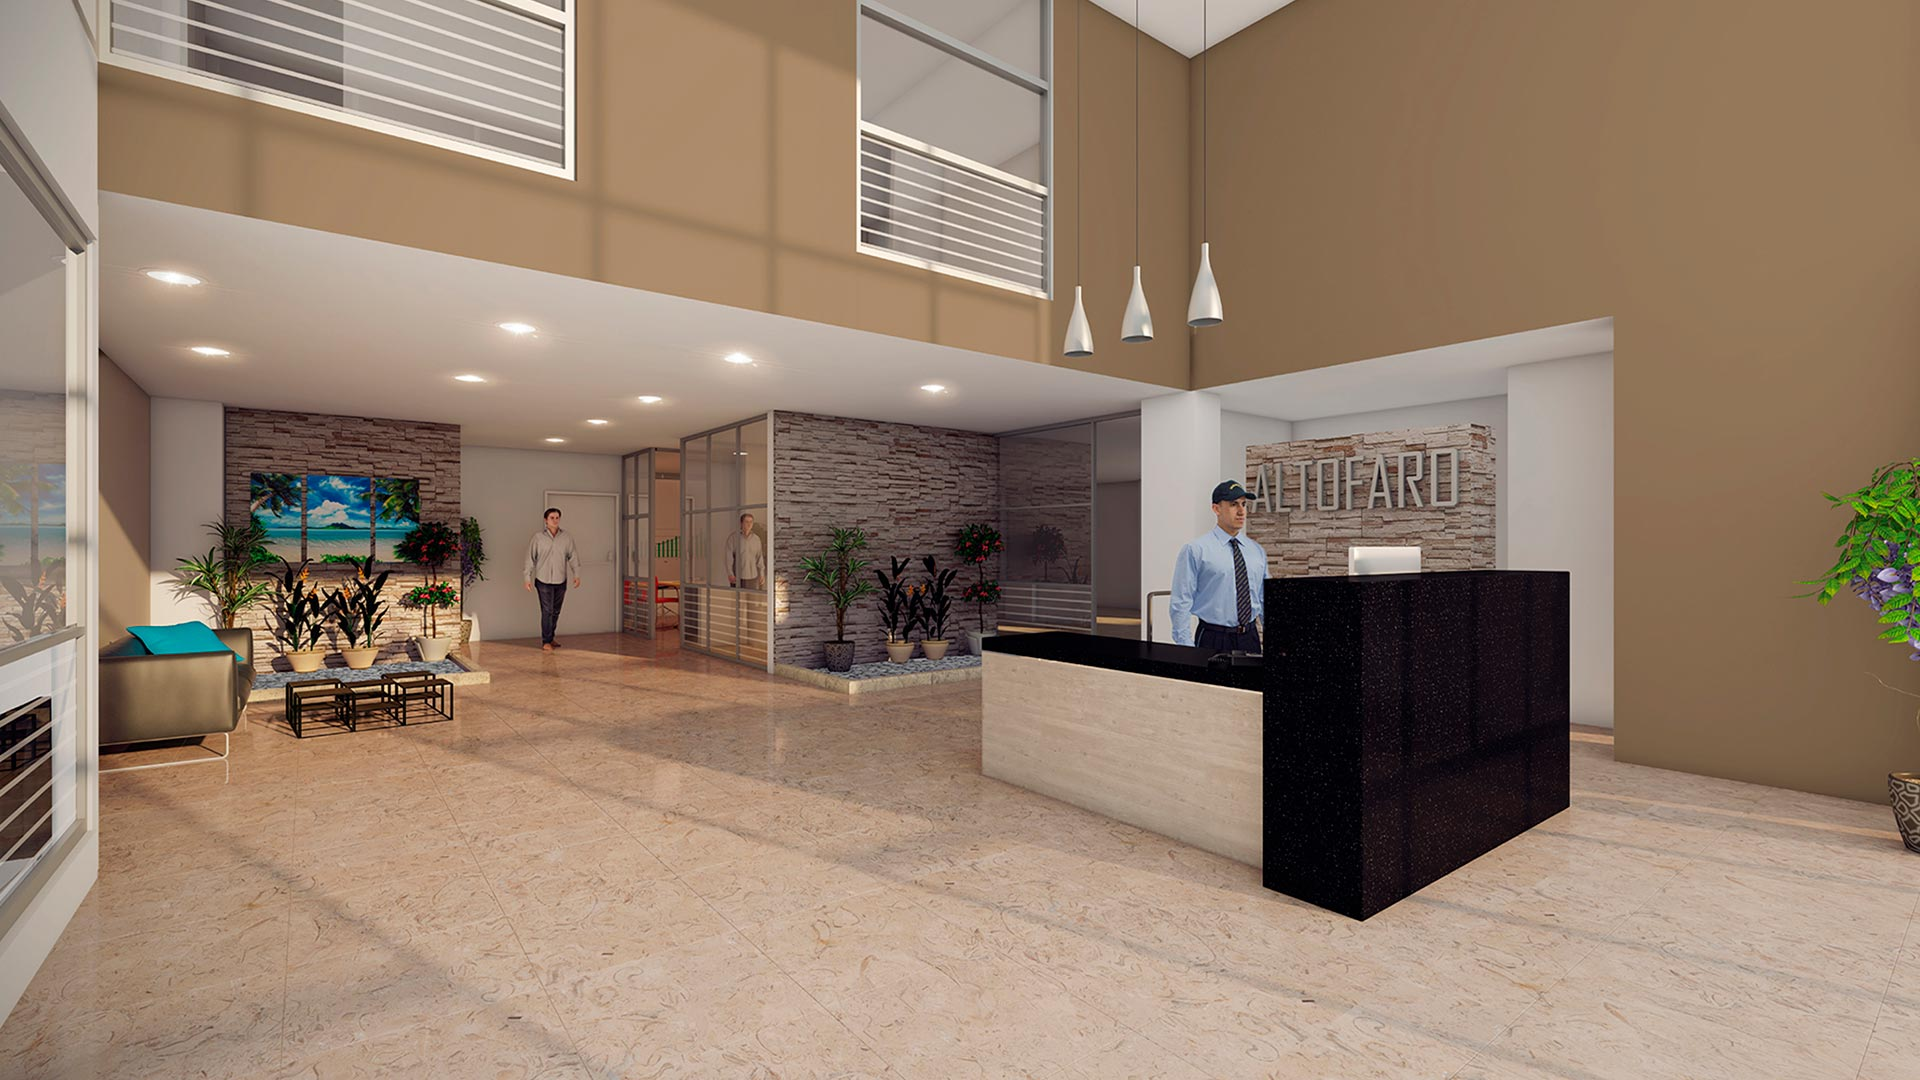 MARVAL ALTOFARO LOBBY ROTULO